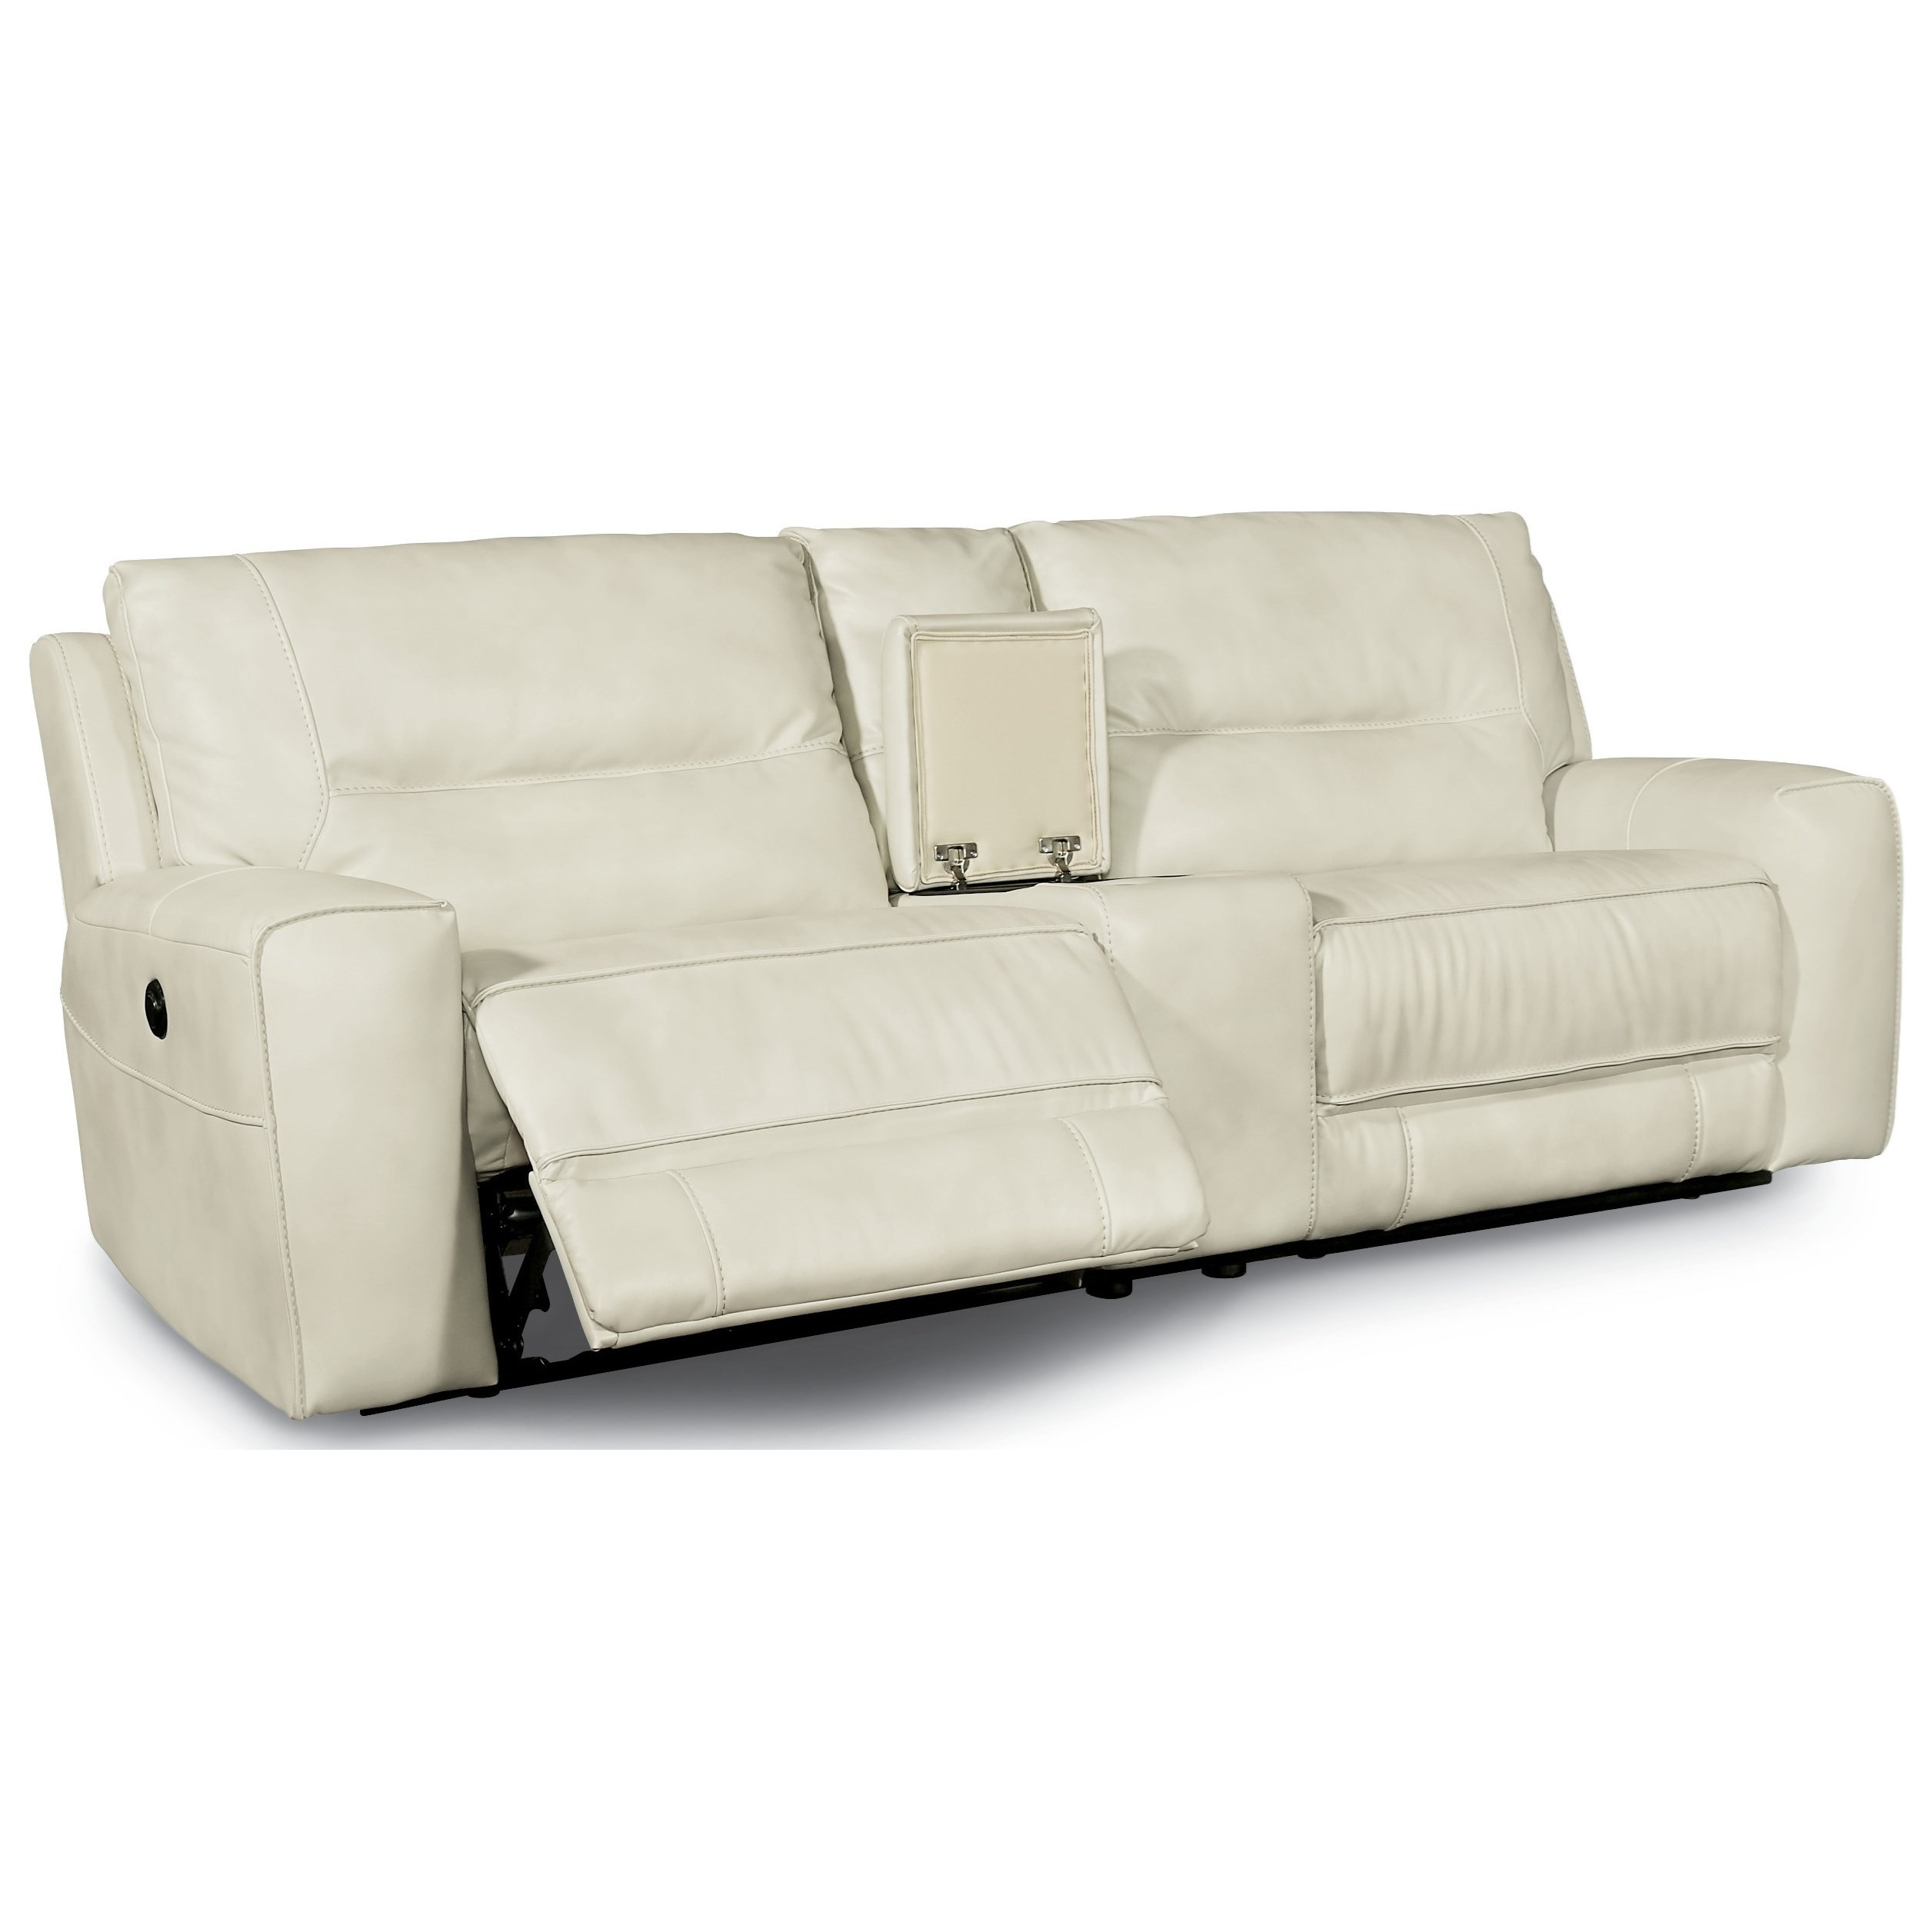 Flexsteel Latitudes-Molino Power Reclining Small Sectional with Console - Item Number: 1756-57P+1756-72+1756-58P